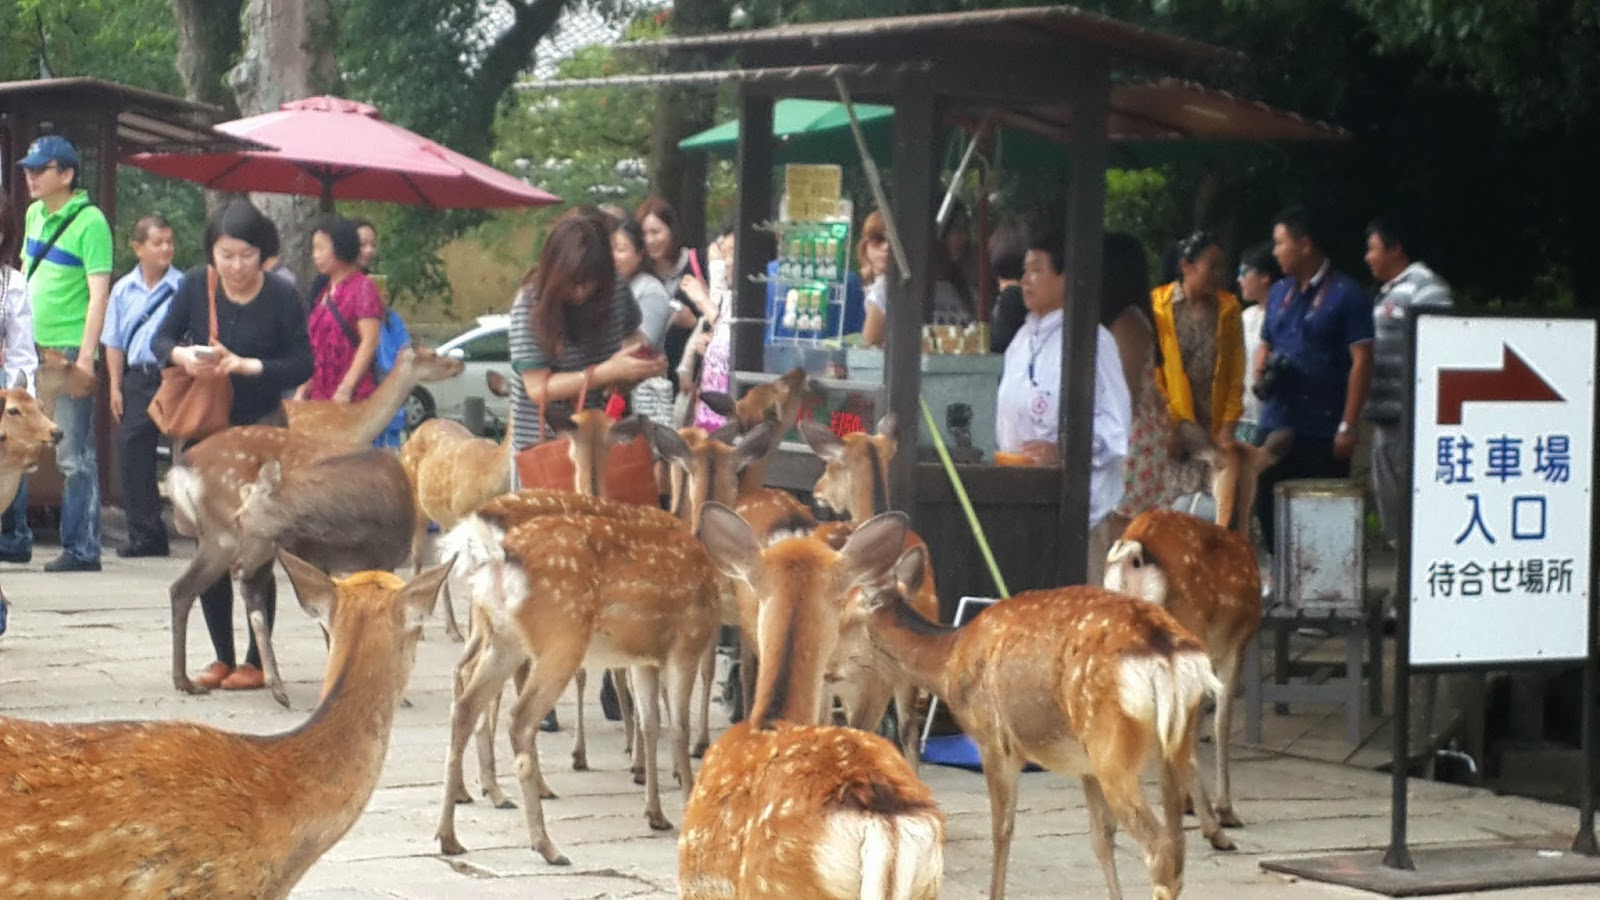 Deers waiting for treats